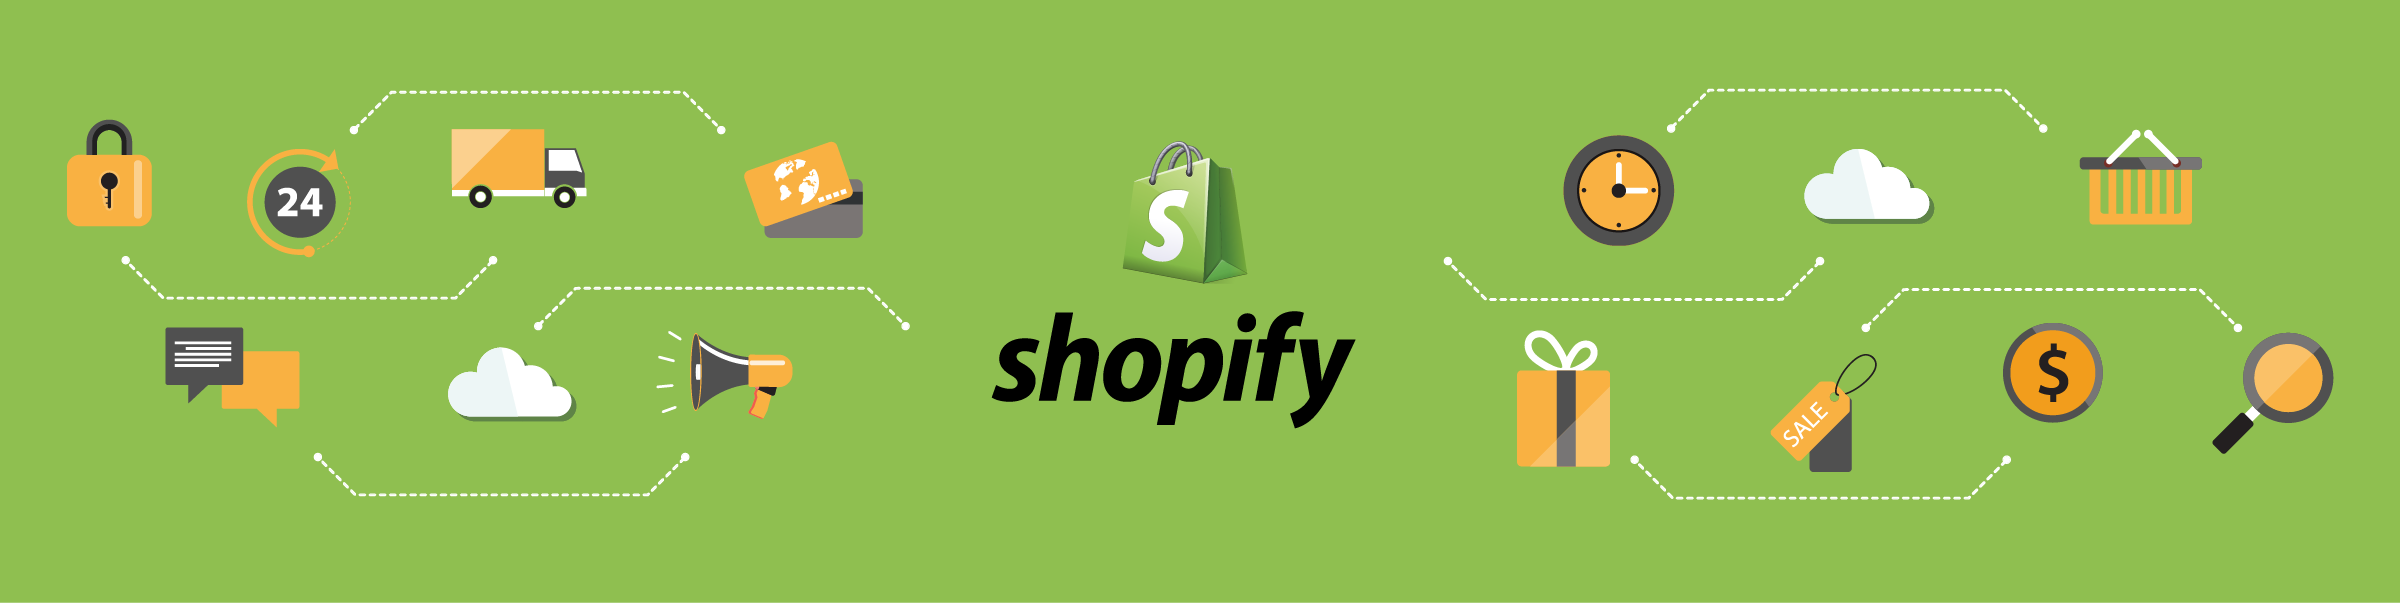 Shopify Lakewood NJ